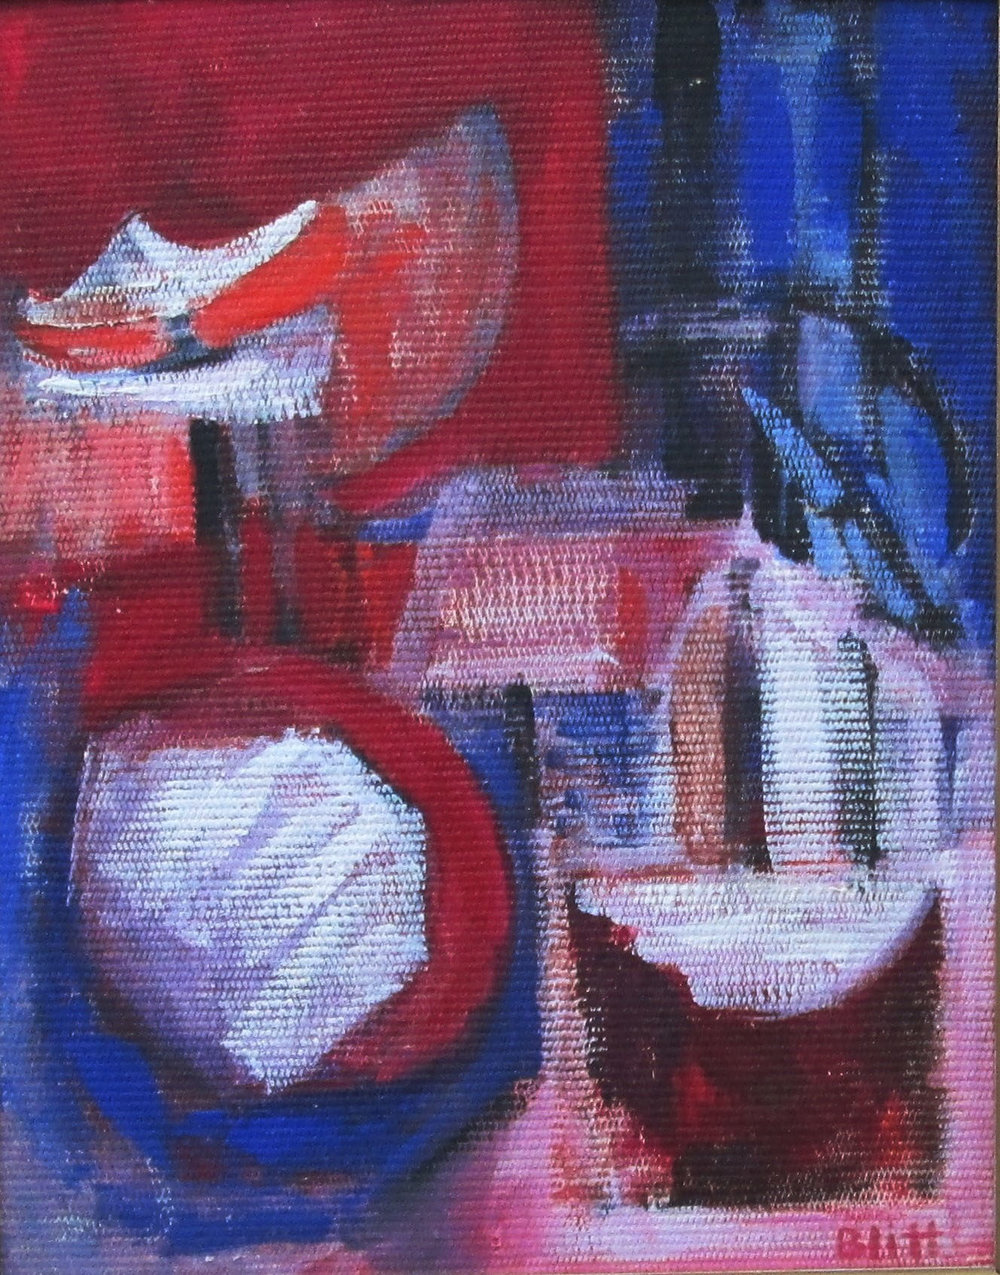 Capturing the Beat of the Drums 1959, acrylic on masonite, acrylic, 20x16 in